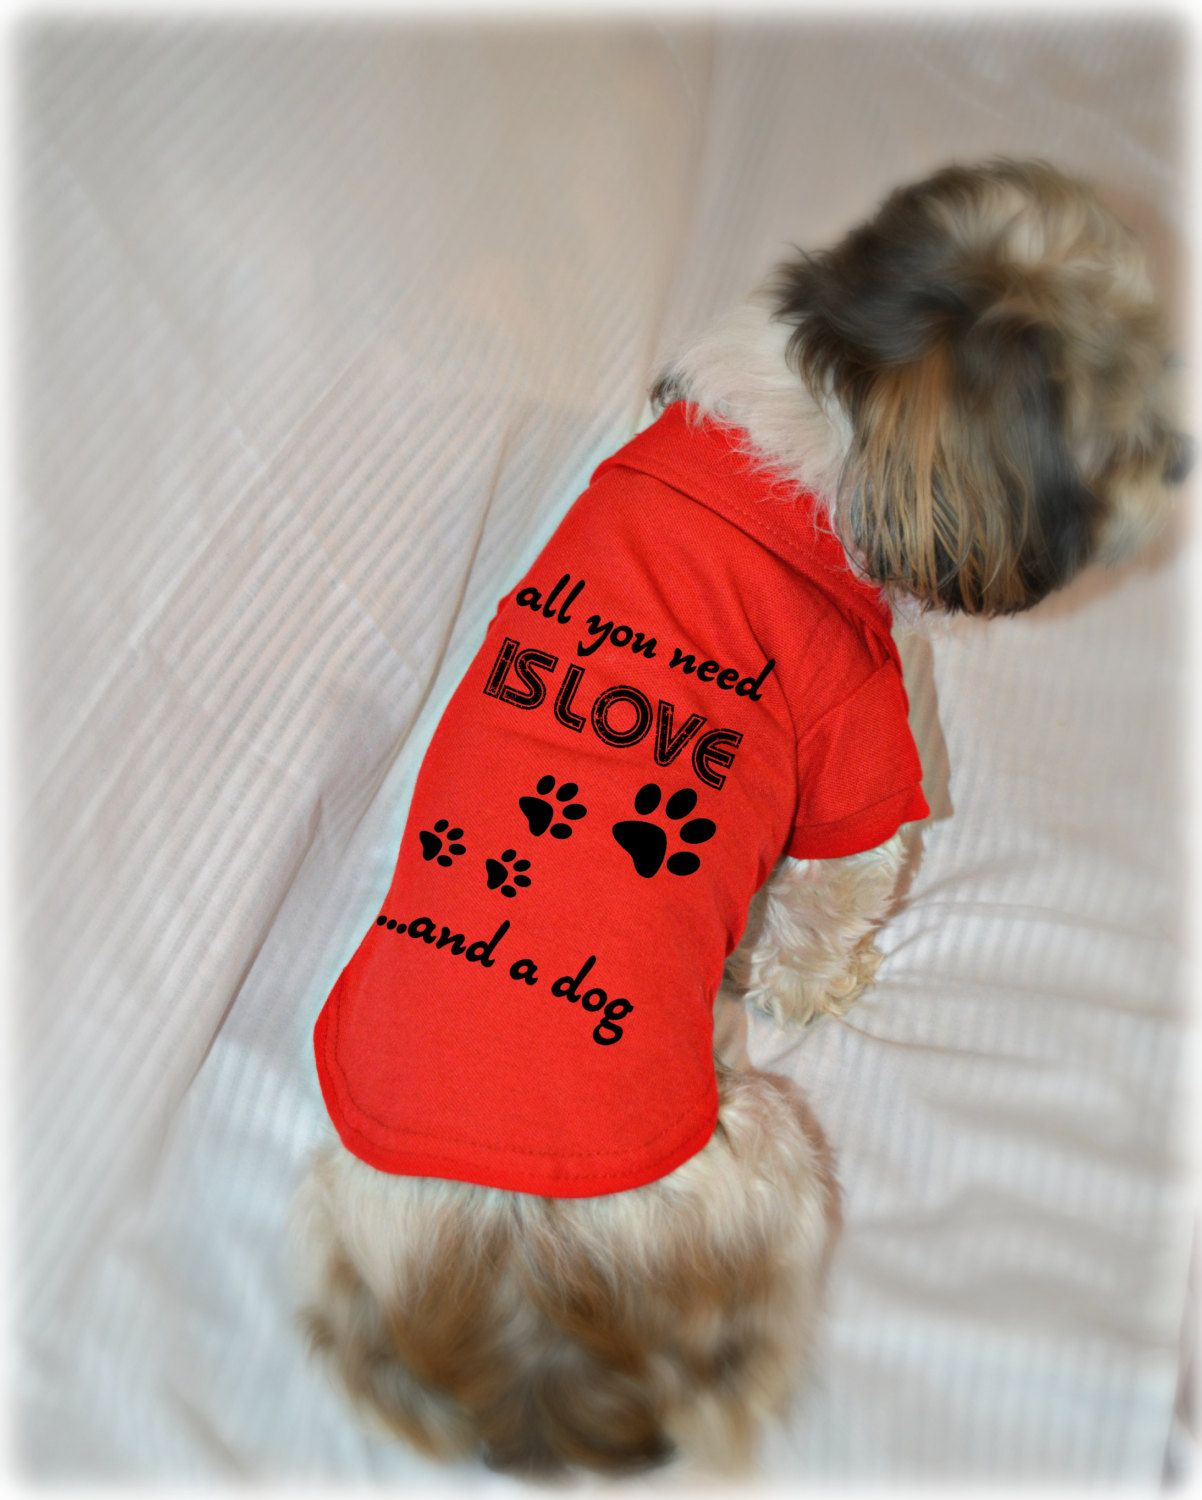 Dog Polo T Shirt All You Need Is Love And A Dog Puppy Dog Shirt Cute Dog Quotes Small Pet Clothes Cute Dog Quotes Dog Shirt Pet Clothes